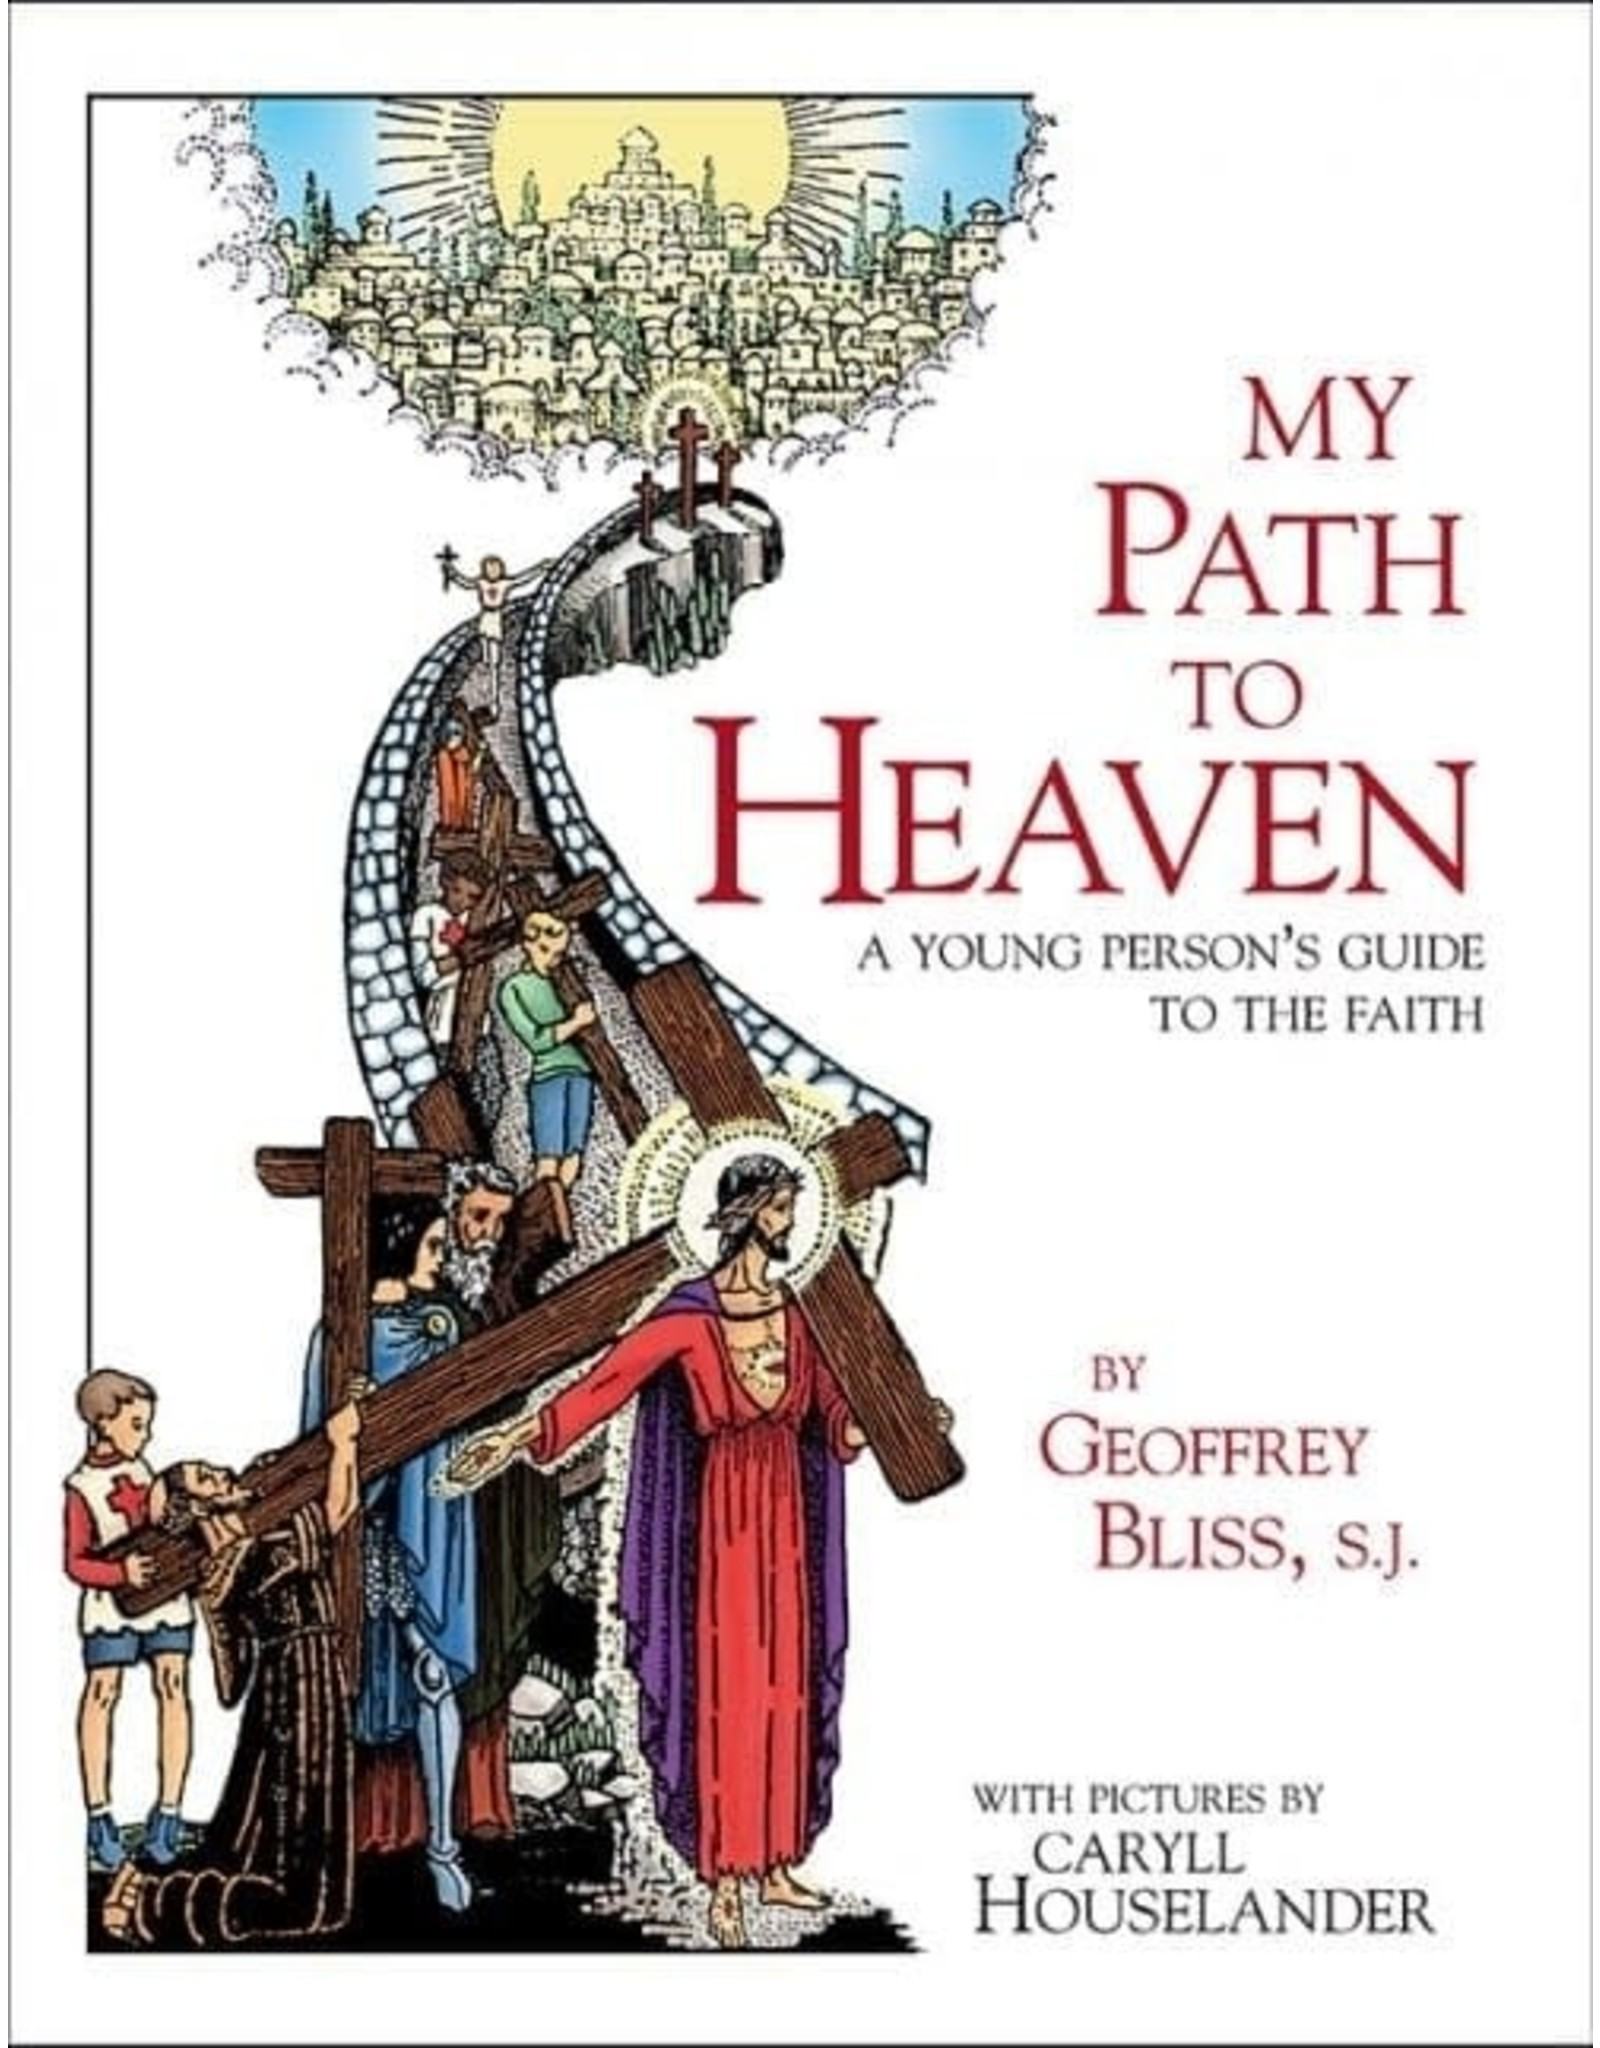 My Path to Heaven: A Young Person's Guide to the Faith, by Geoffrey Bliss